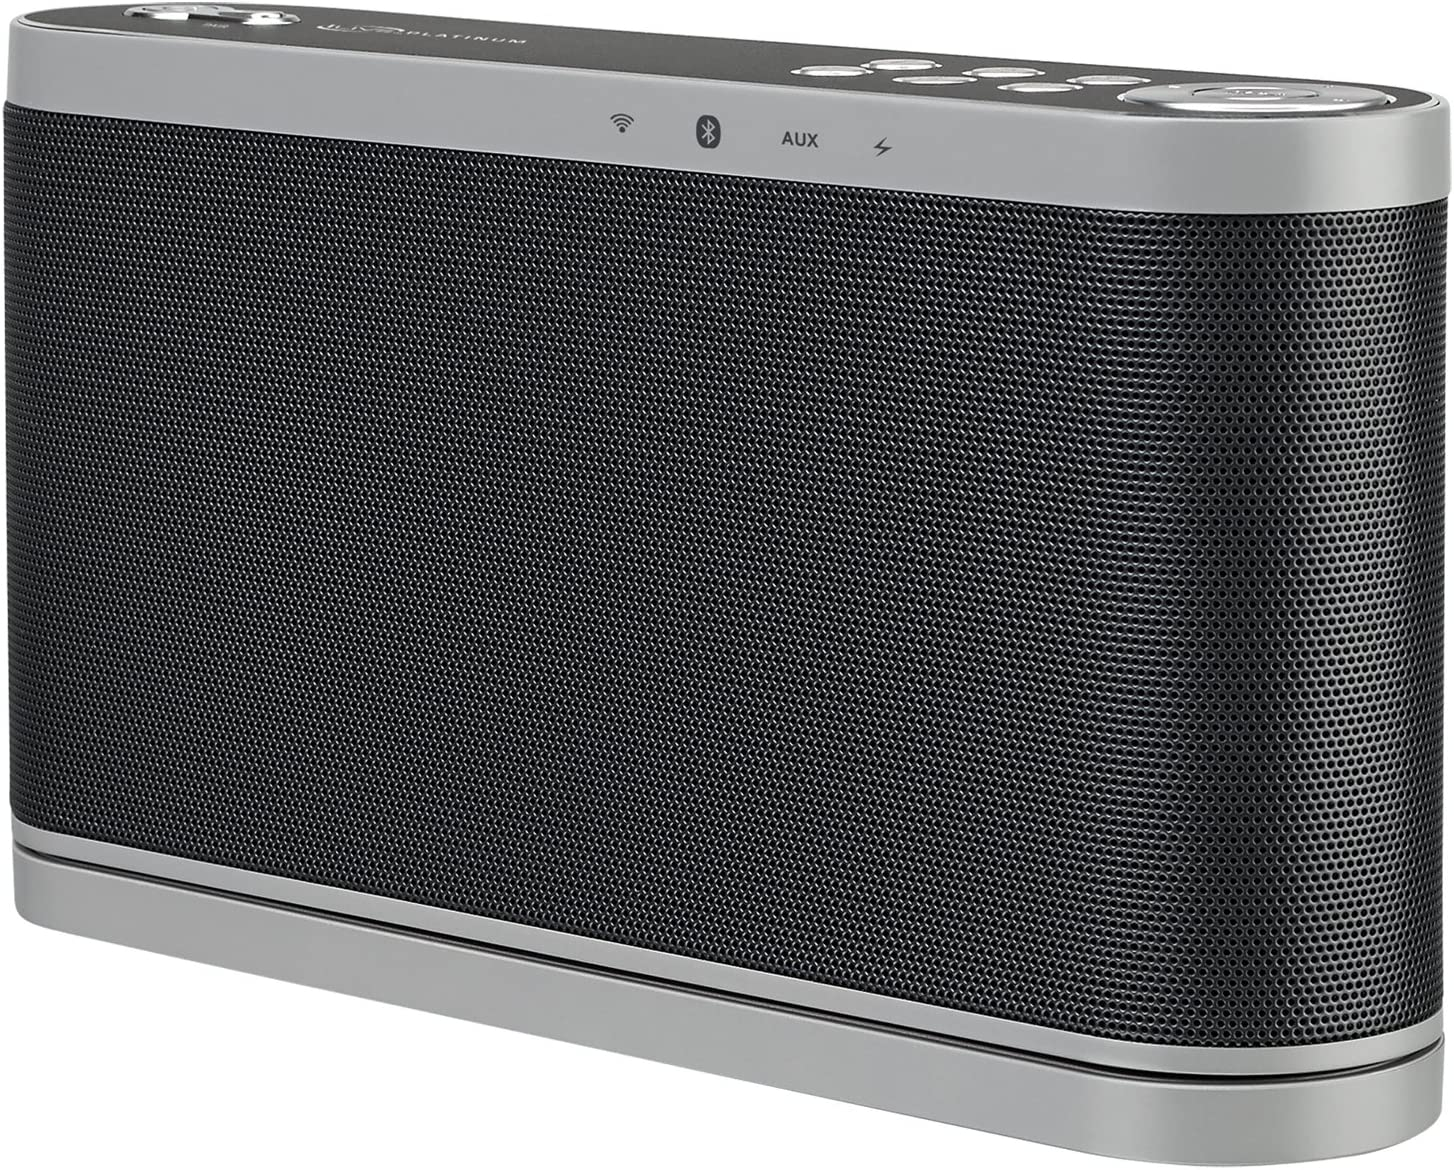 iLive (ISWF576B) Wireless Multi-Room Wi-Fi Speaker, Rechargeable Lithium Ion Battery, Black